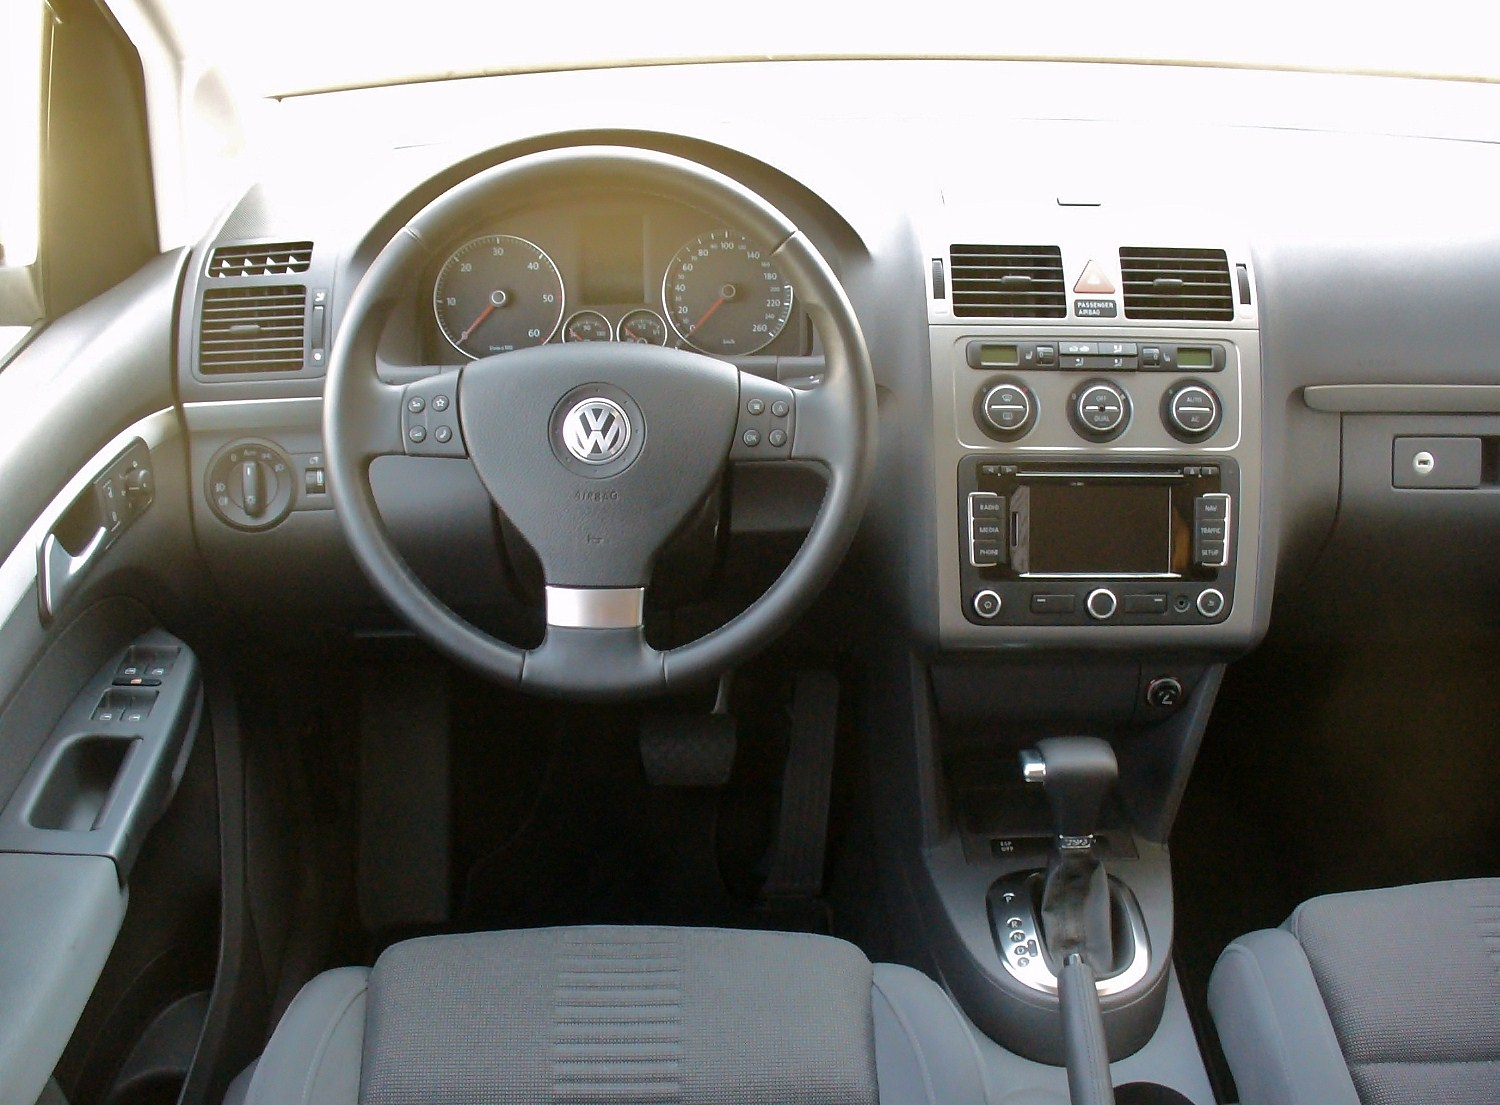 https://upload.wikimedia.org/wikipedia/commons/b/b2/VW_Touran_2.0_TDI_DSG_Highline_Deep_Black_Interieur.JPG